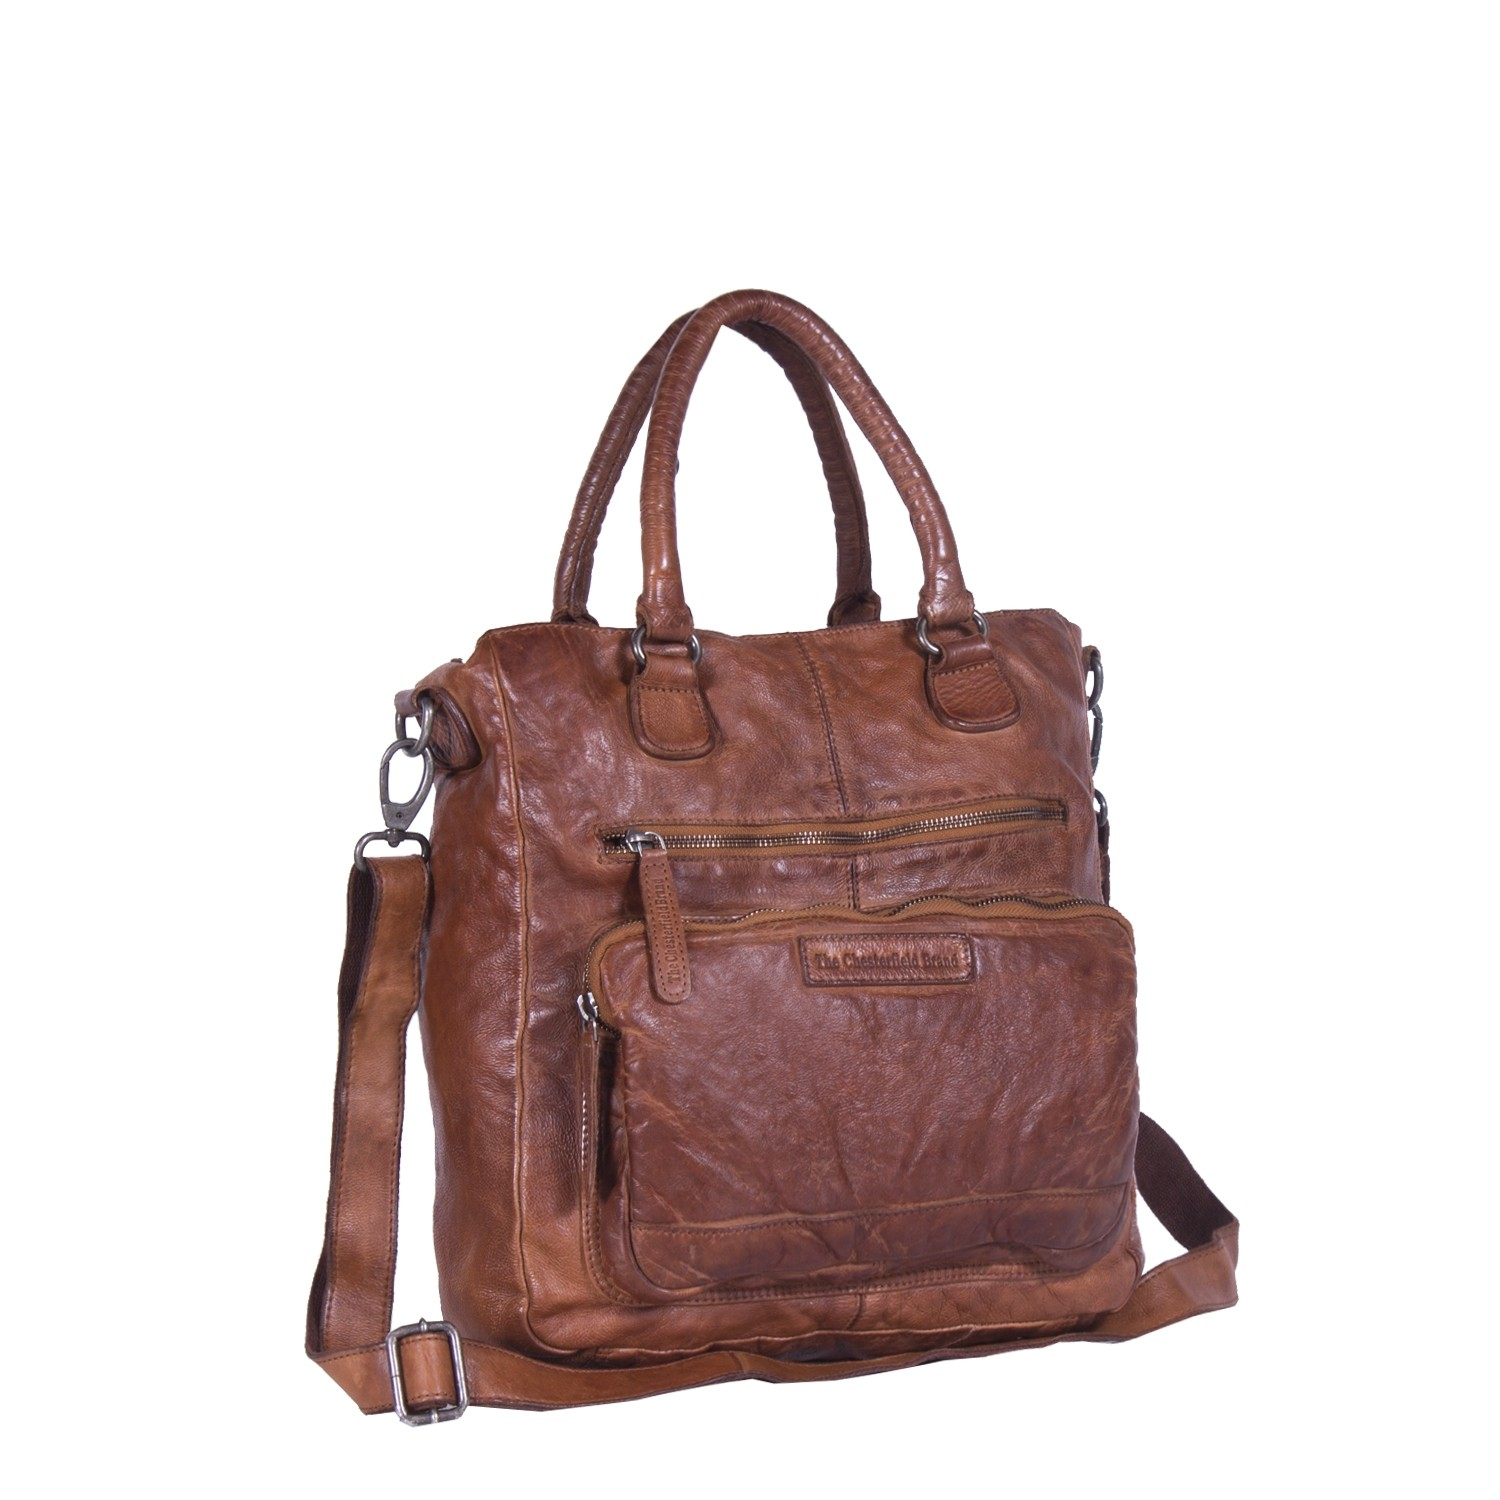 Bilde av Chesterfield Leather Shopper Bag Cognac Romy